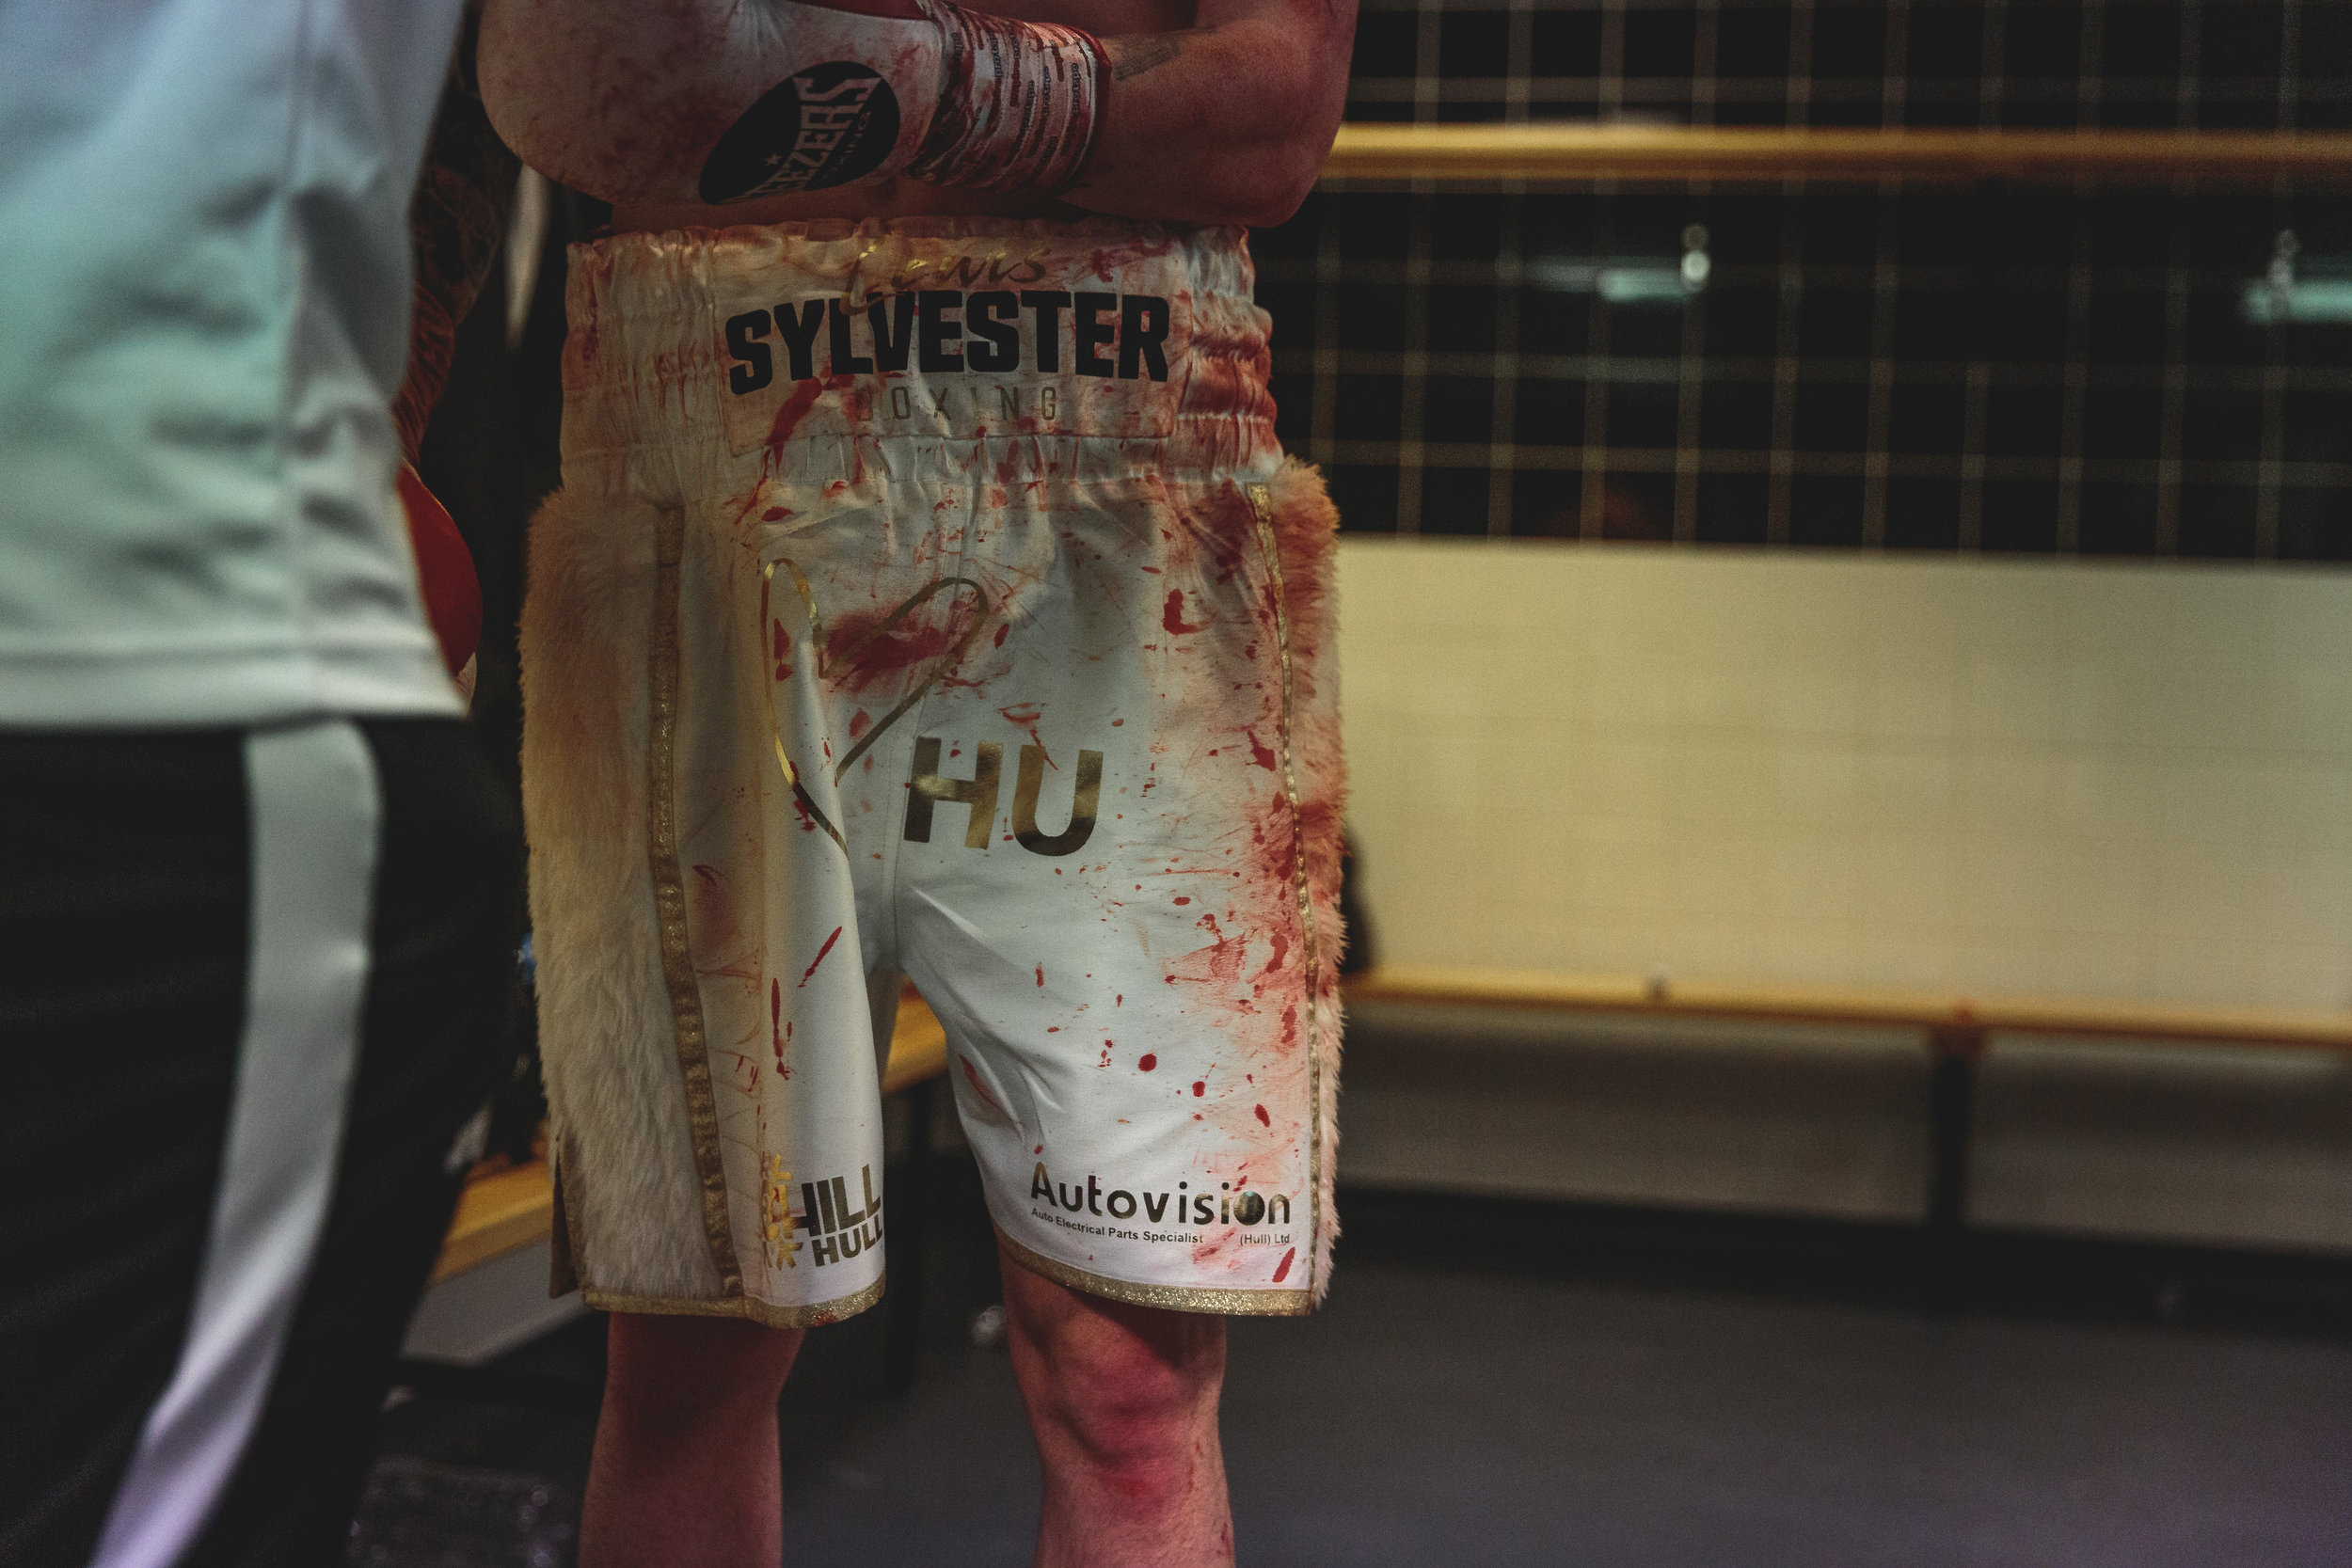 Lewis Sylvester's Bloody Shorts